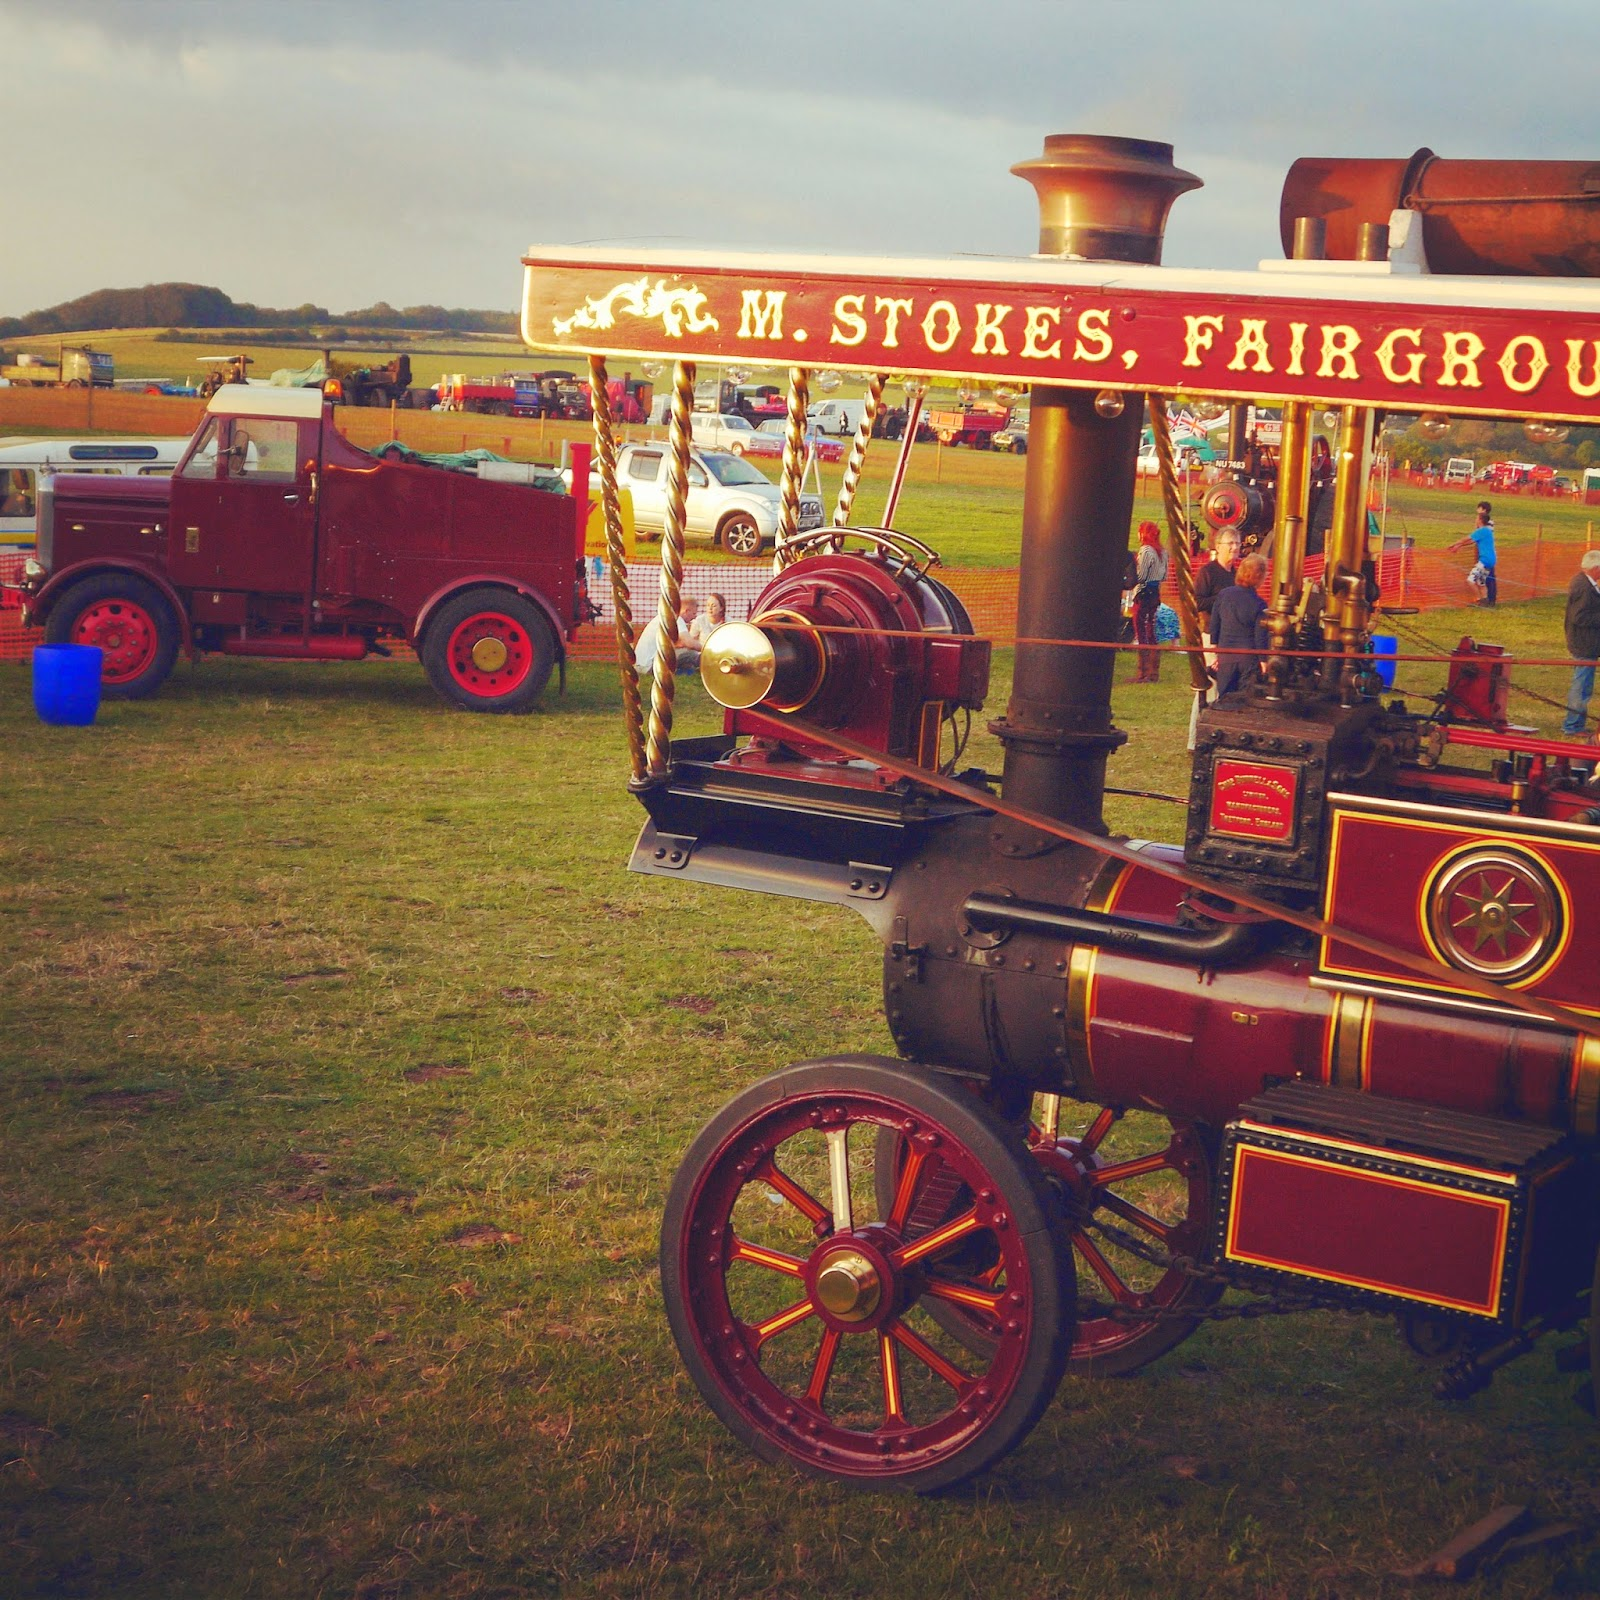 Sunset over the steam rally